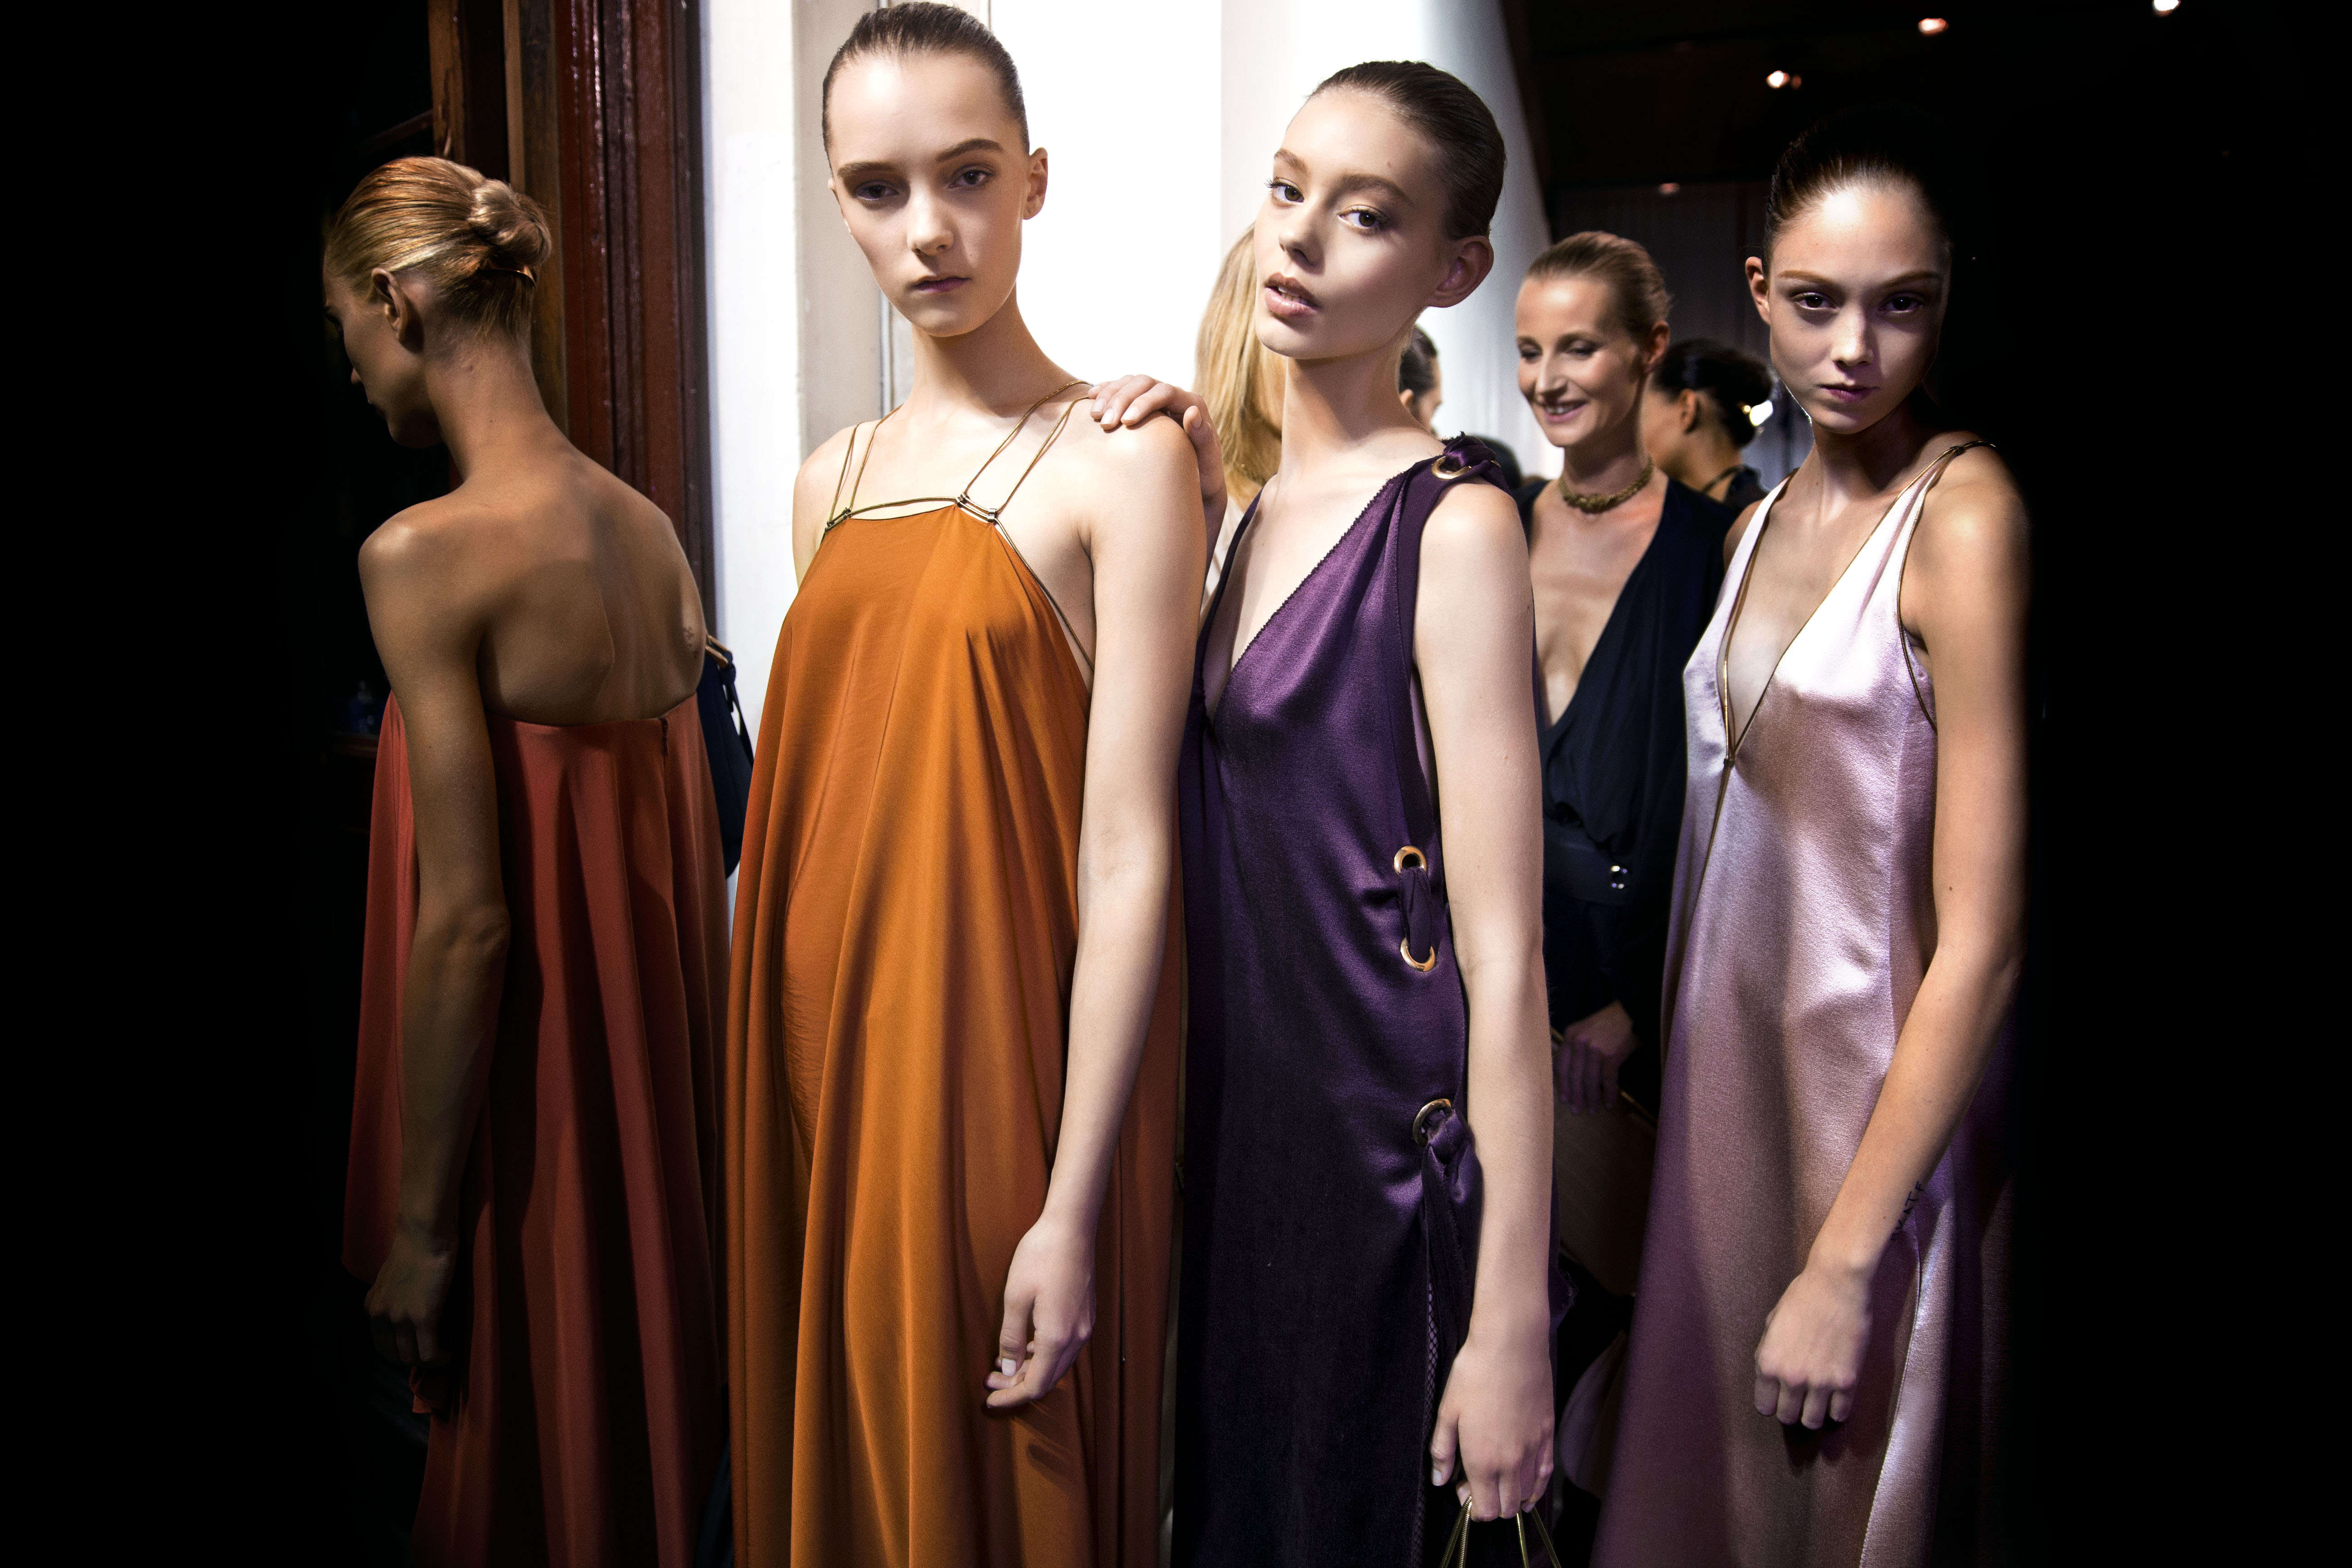 Lanvin backstage at Milan Spring Summer 2015 women s ready-to-wear  collections. 53d6e5f6dc9